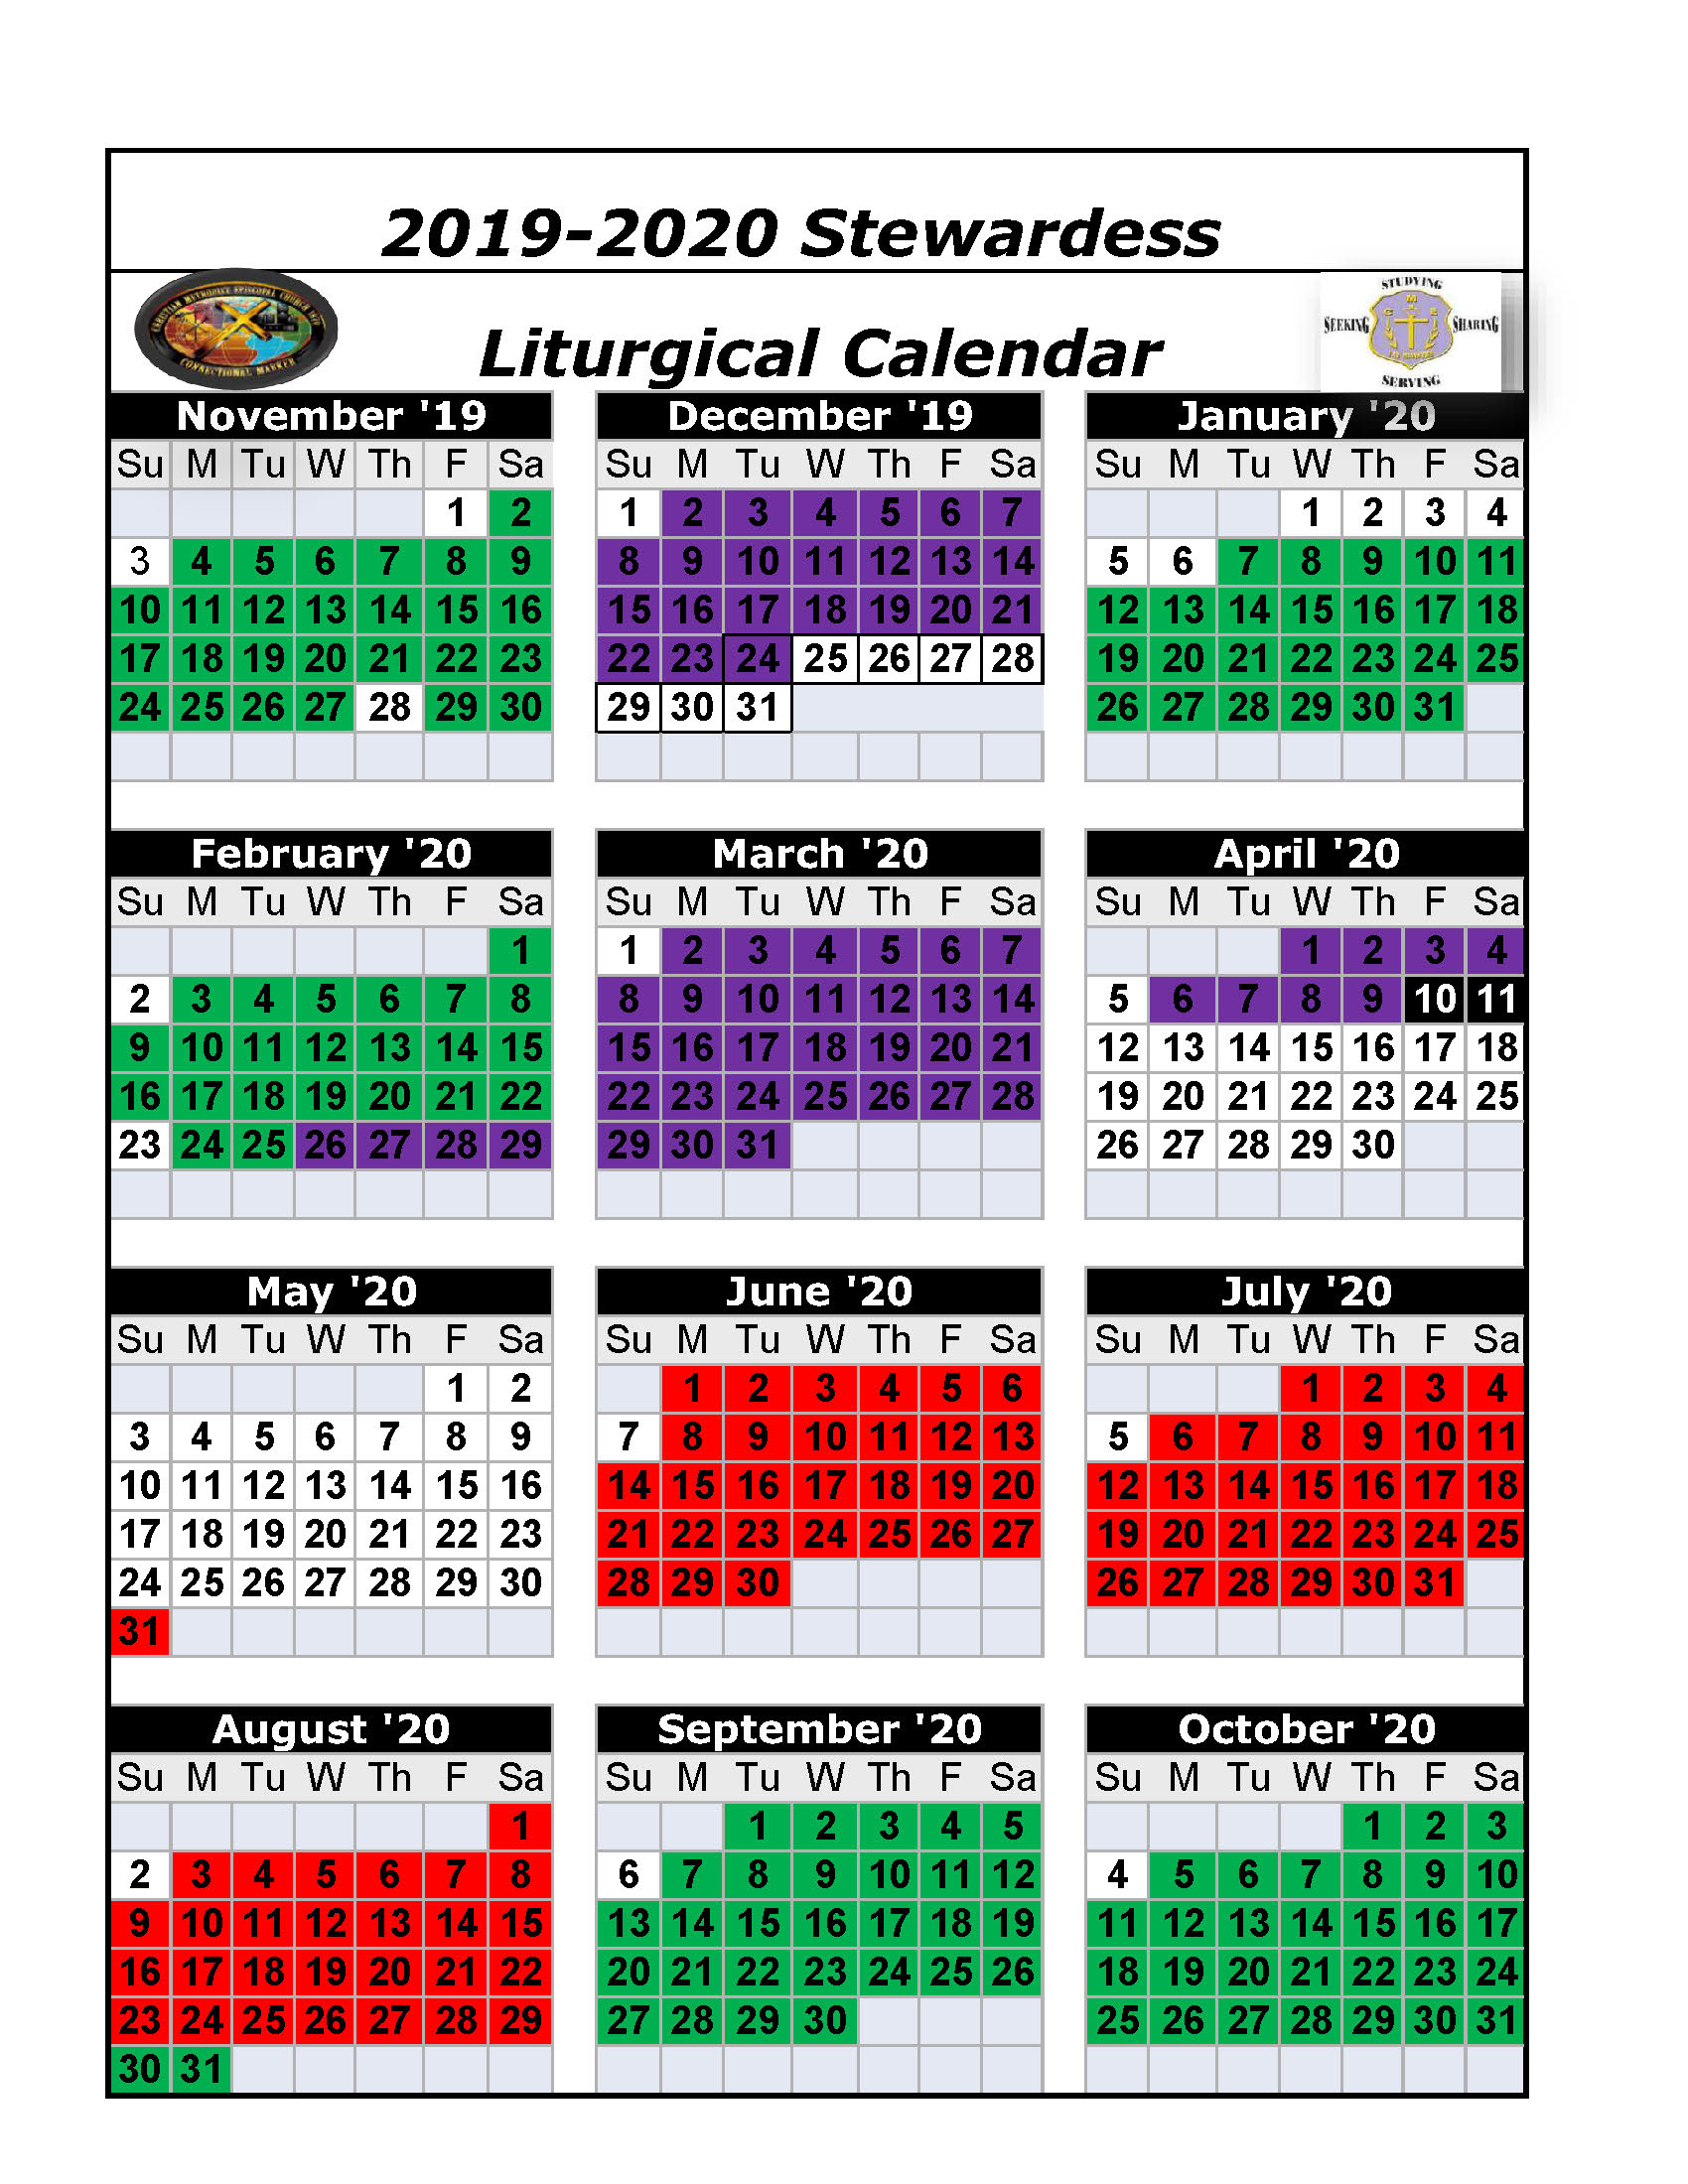 2019-2020 Stewardess Liturgical Calendar